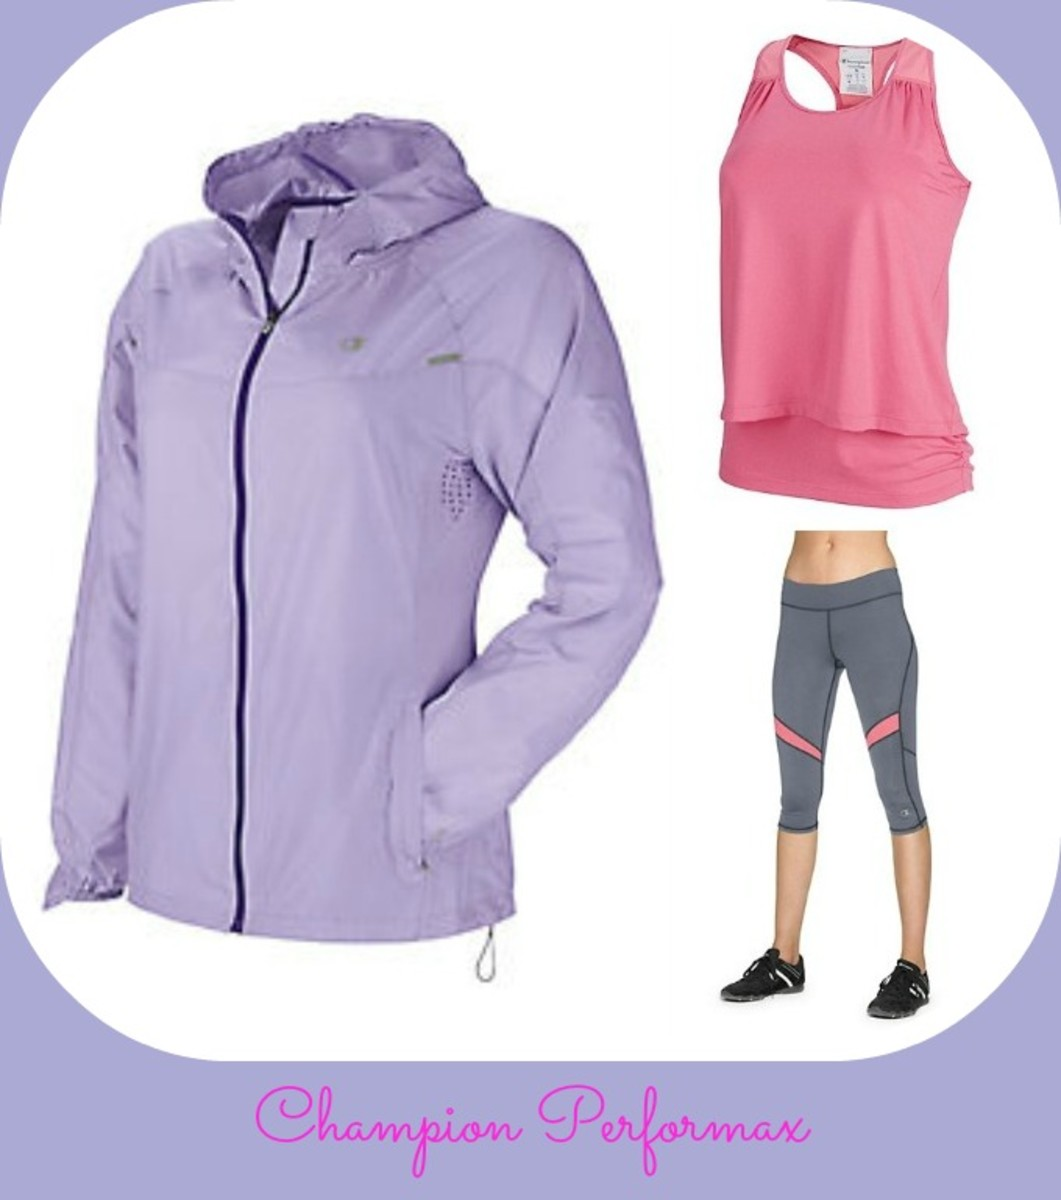 performax, champion,activewear, workout gear